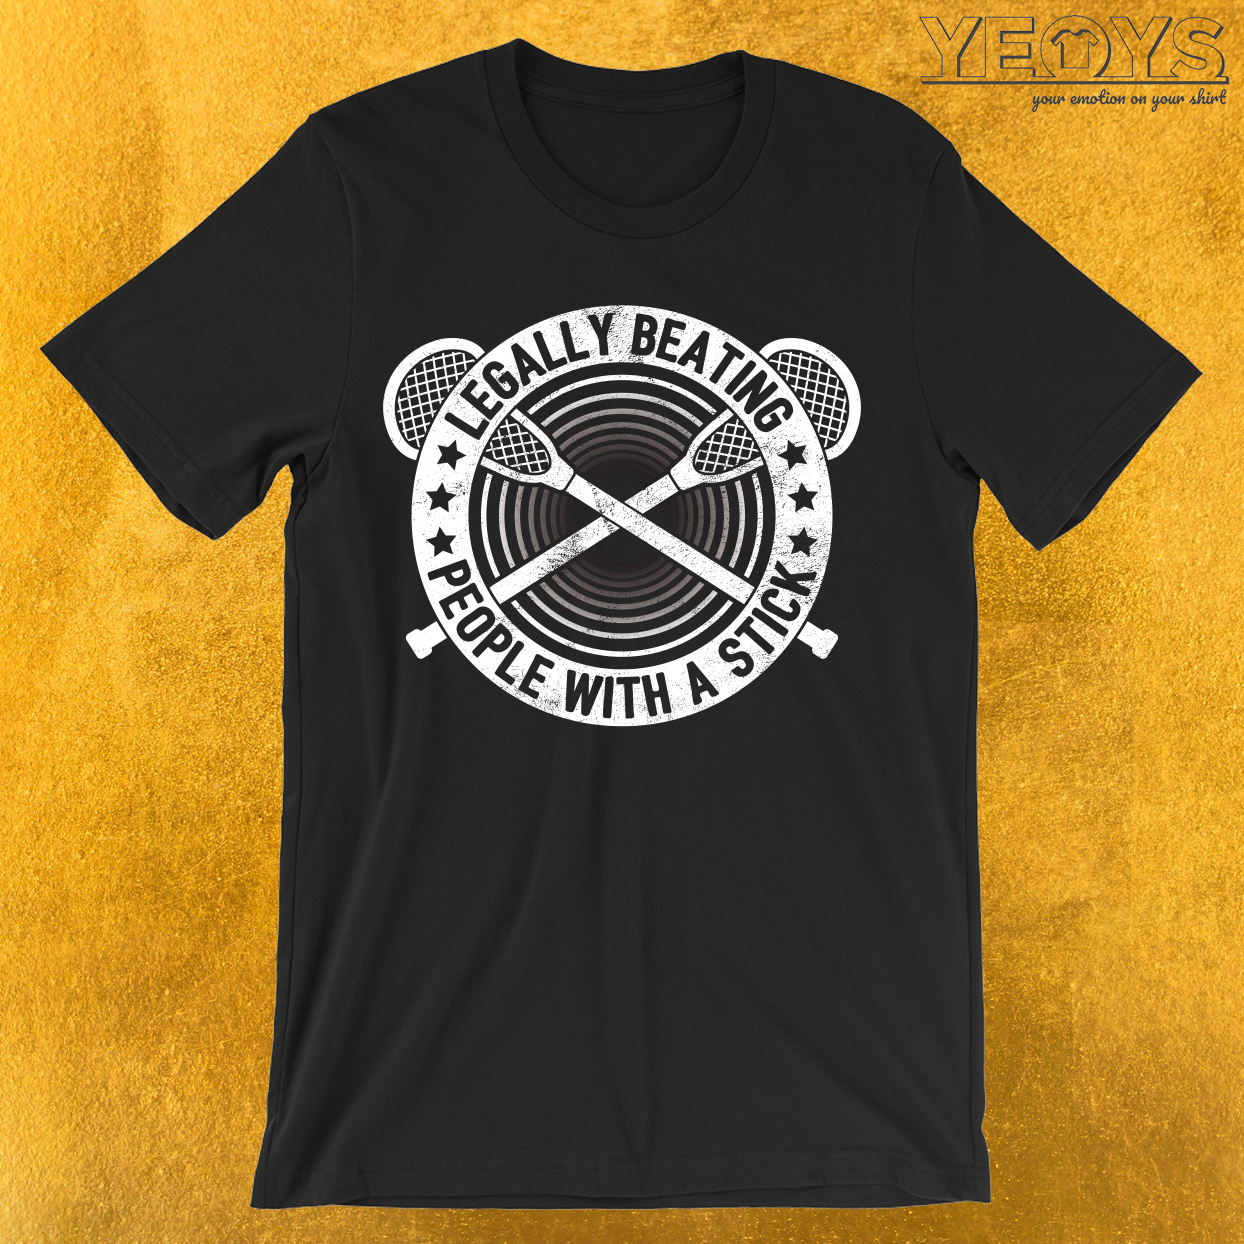 Legally Beating People With Sticks T-Shirt